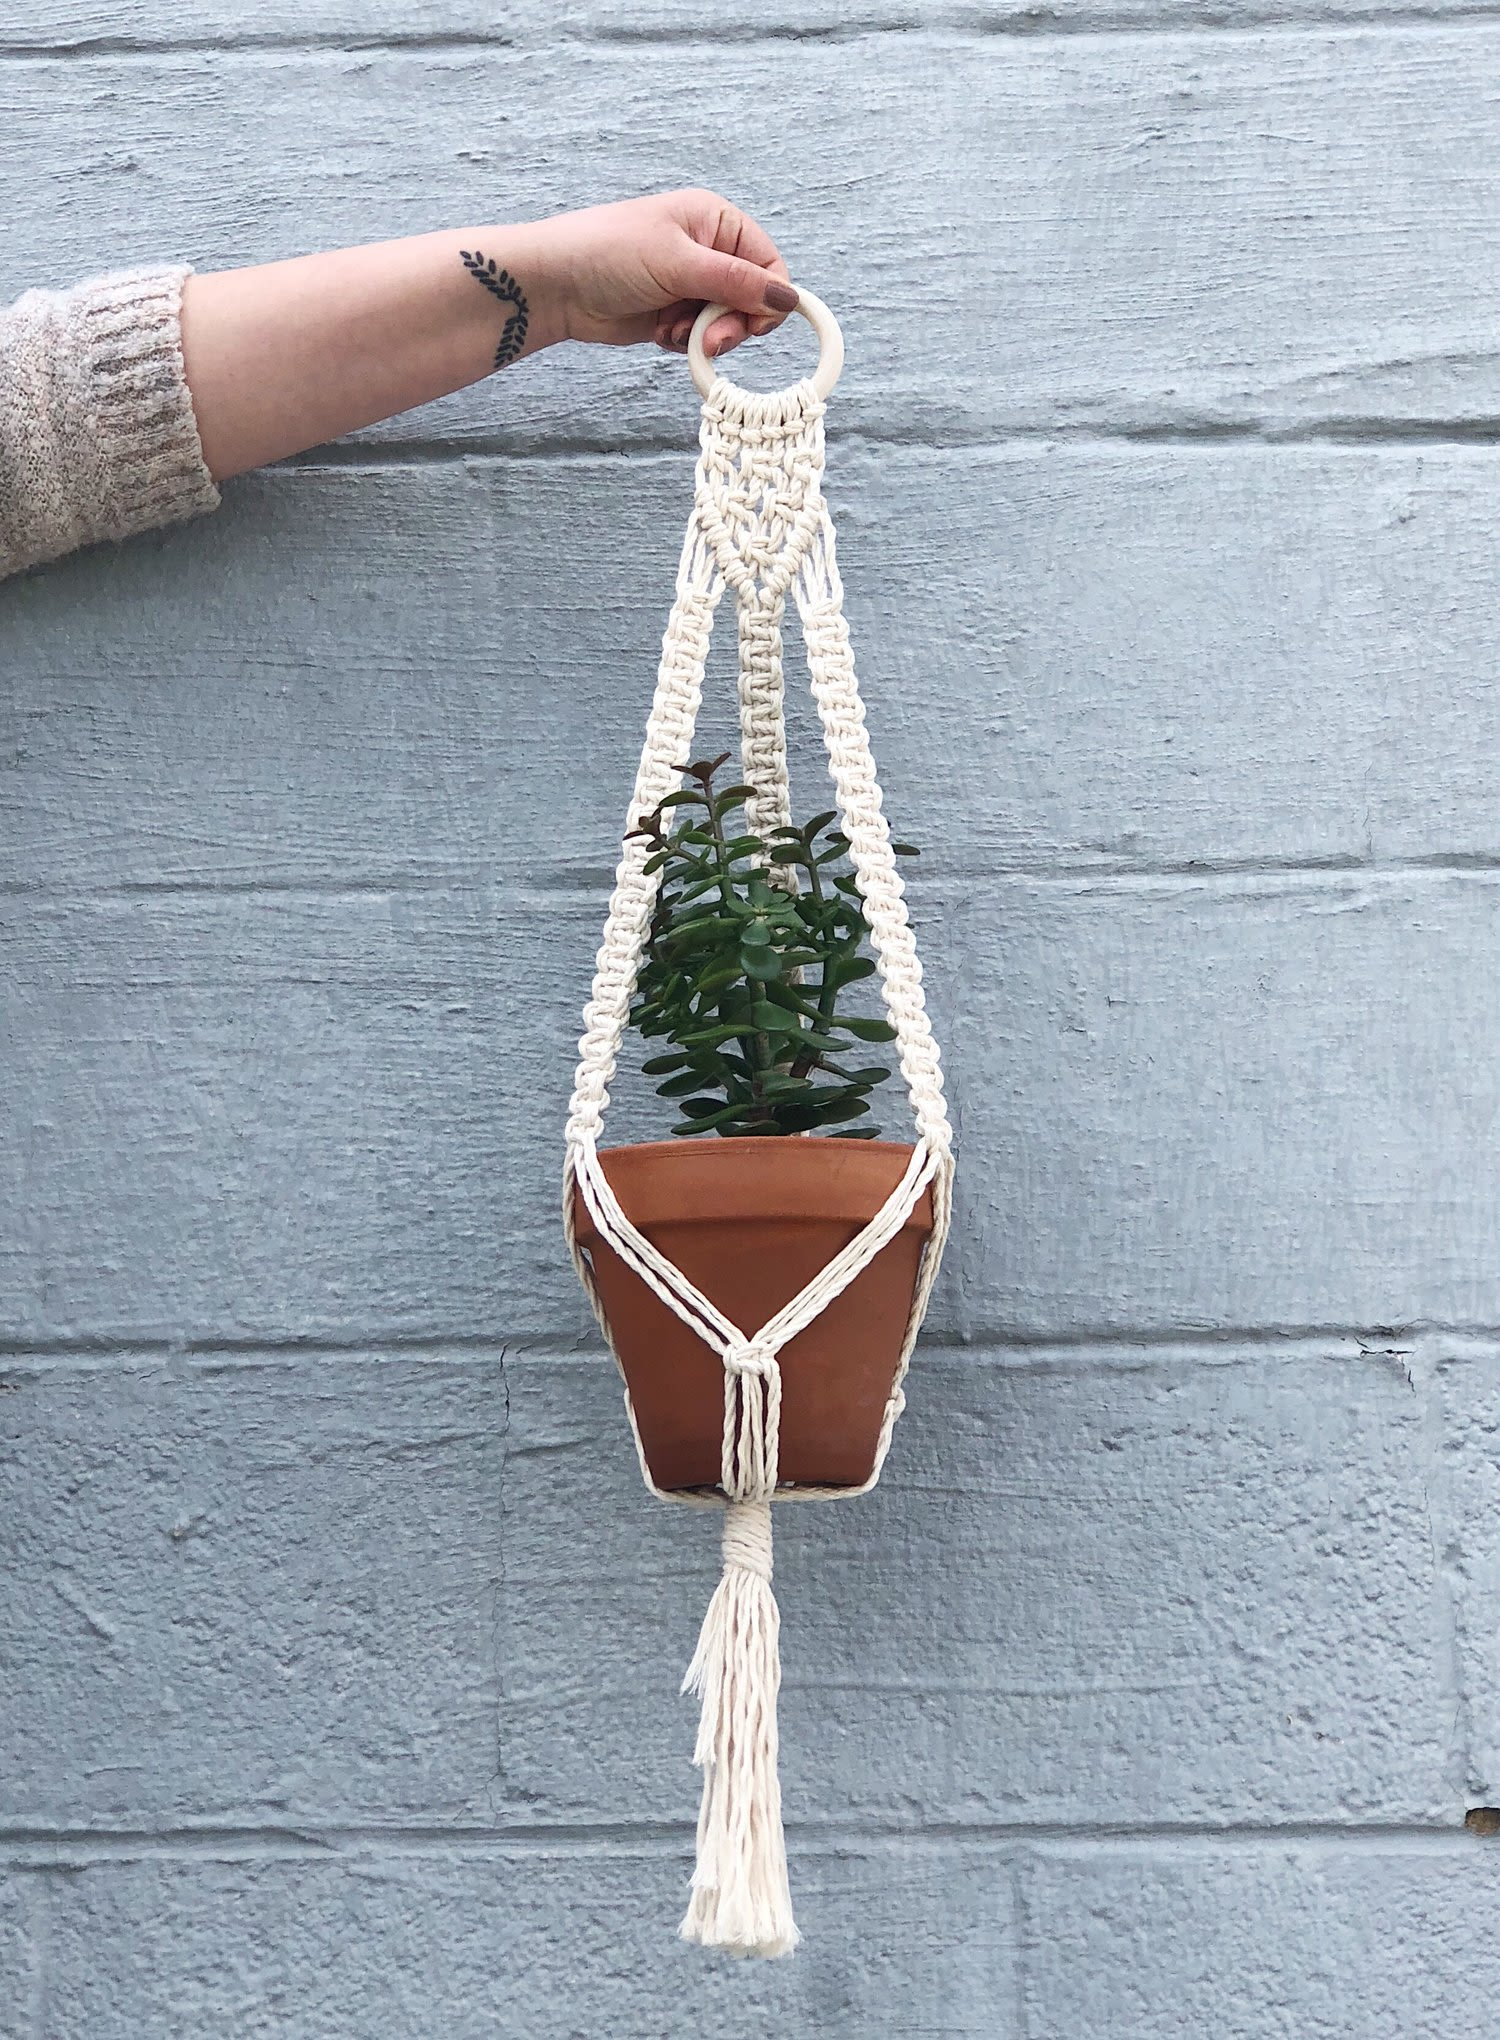 Macrame woven plant hanger with potted plant